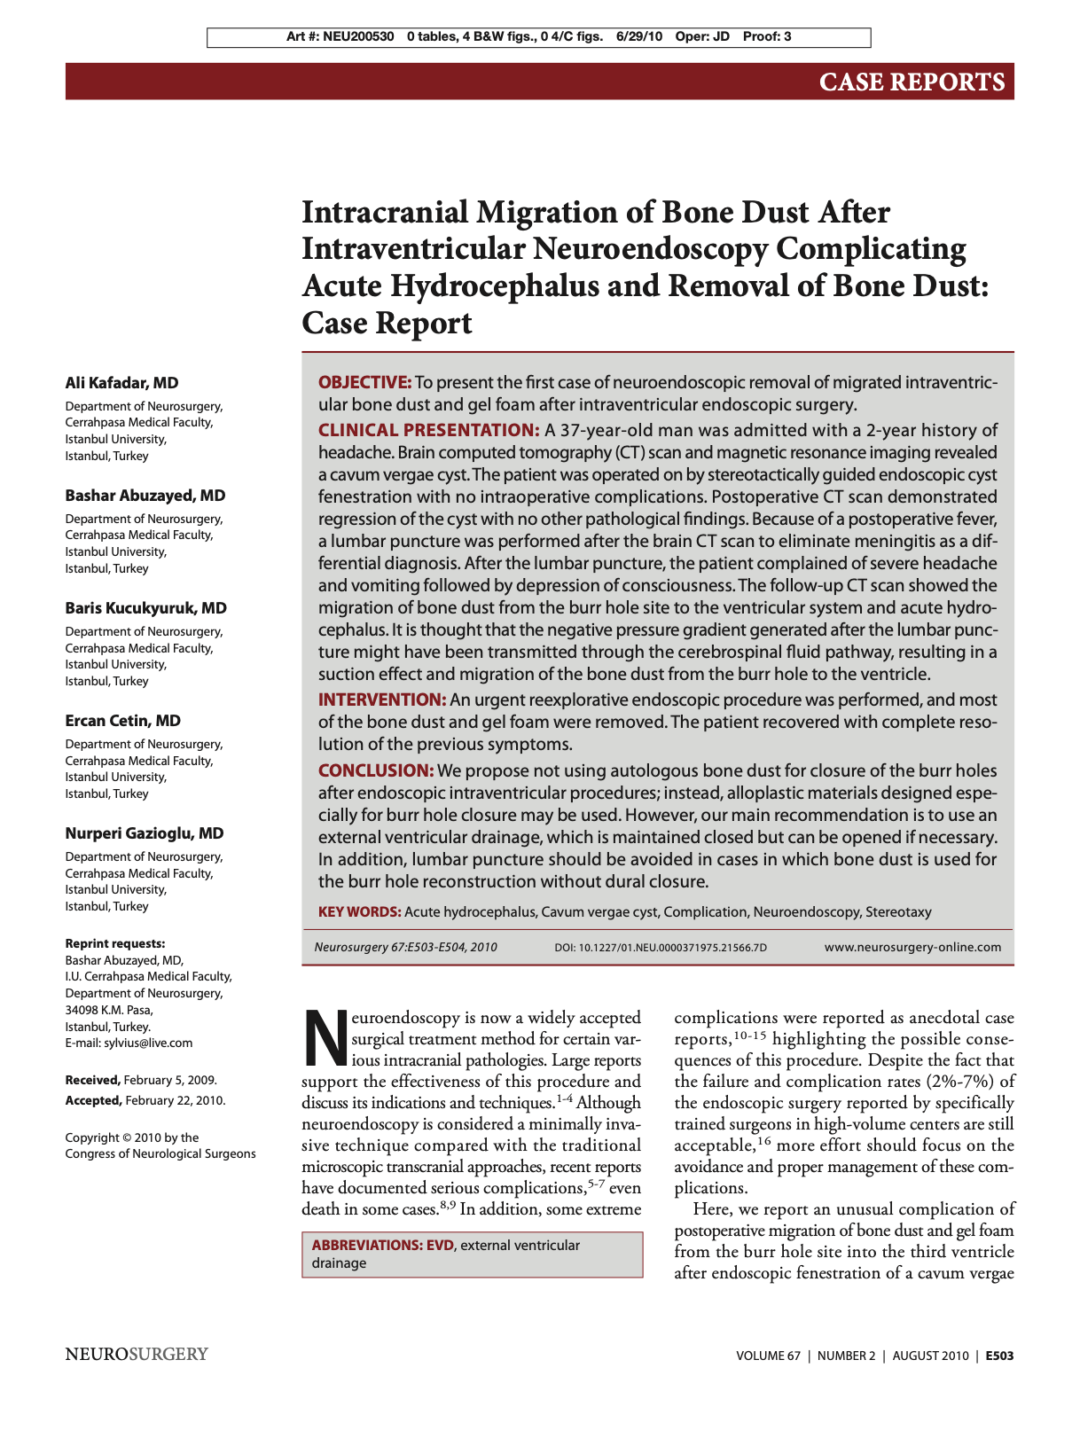 Intracranial Migration of Bone Dust After Intraventricular Neuroendoscopy Complicating Acute Hydrocephalus and Removal of Bone Dust: Case Report